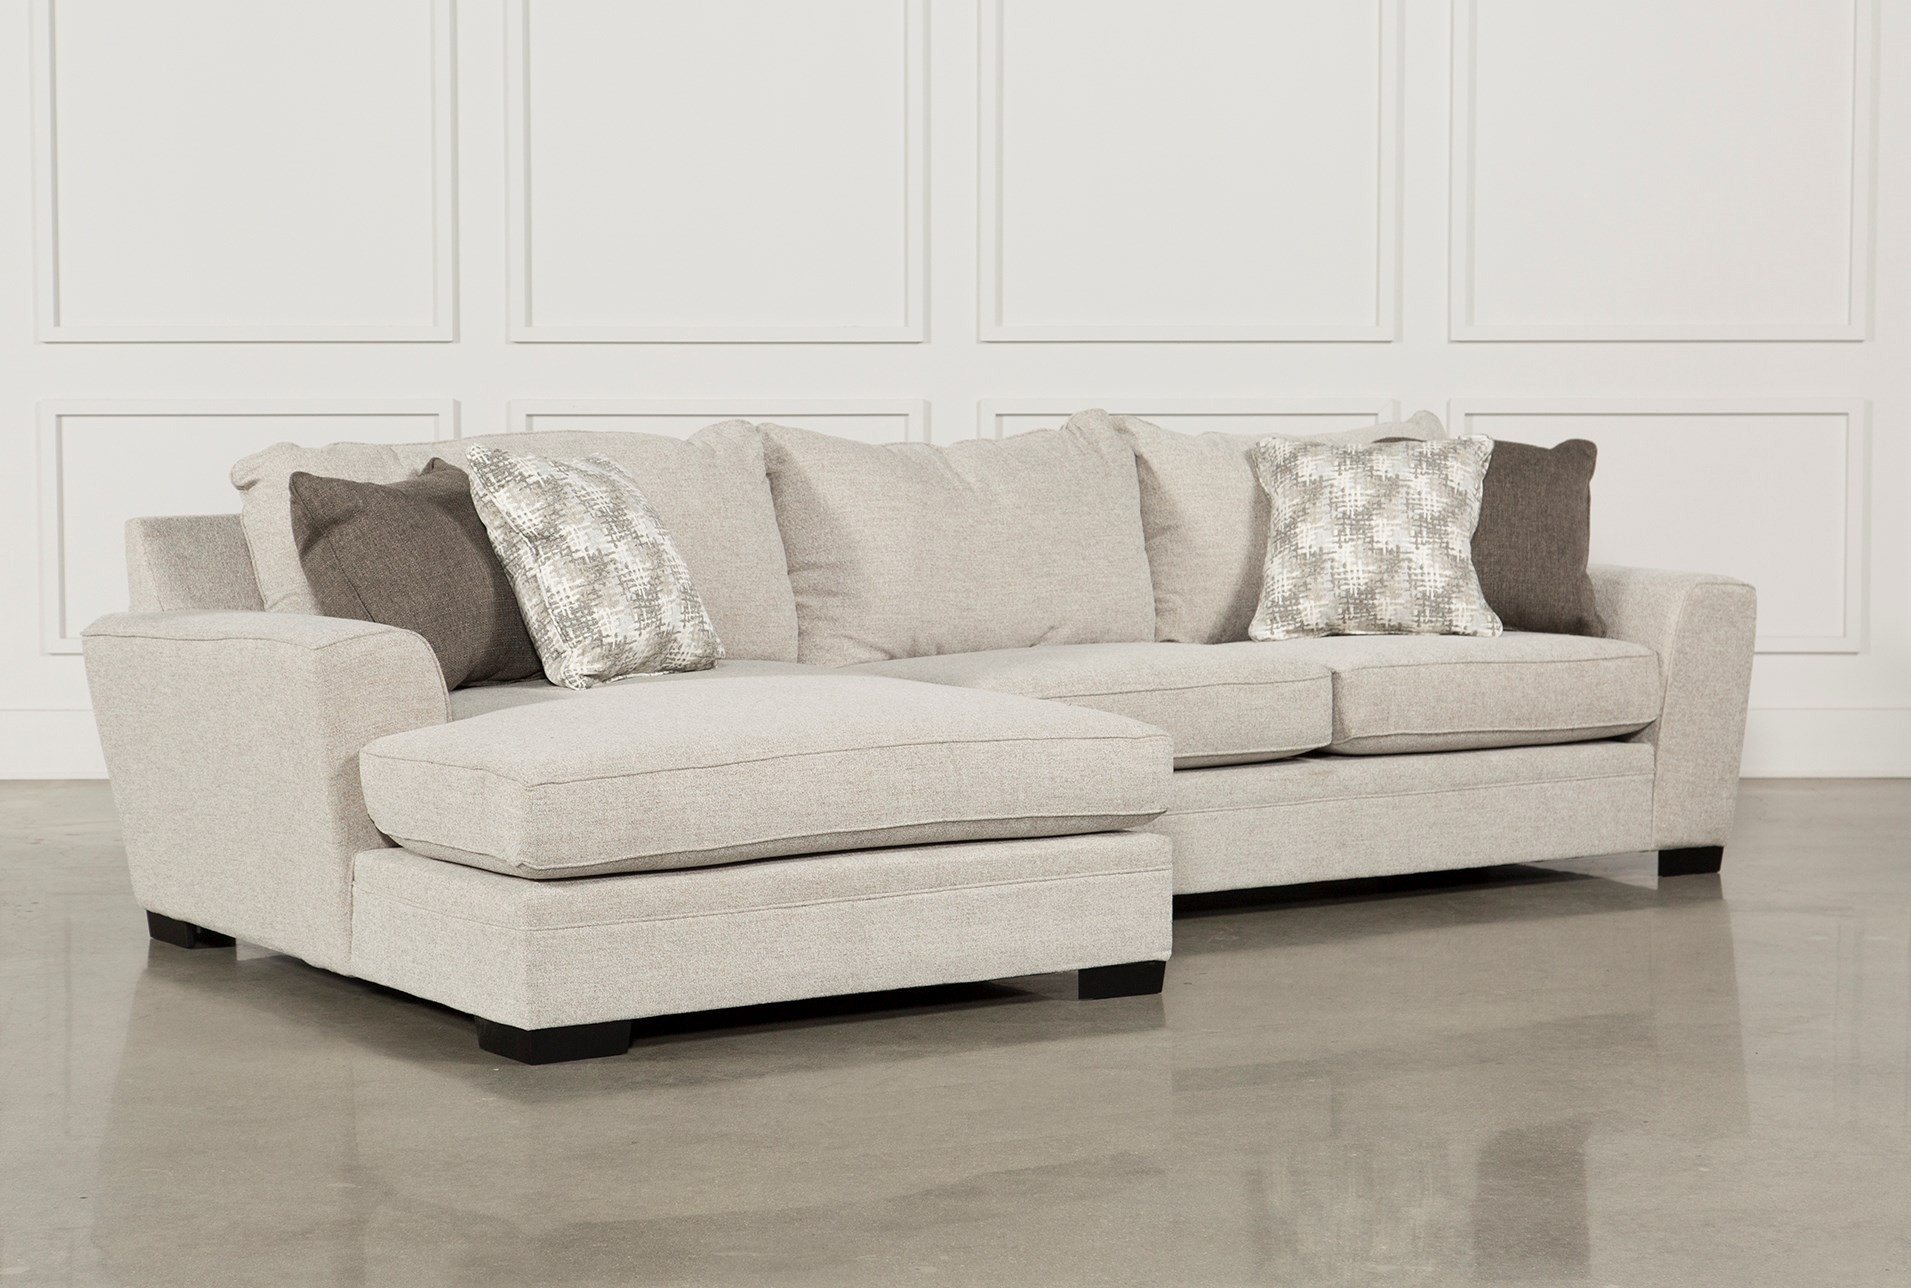 Living Spaces Sectional Sofas Kerri 2 Piece W Raf Chaise 107153 0 Regarding Kerri 2 Piece Sectionals With Laf Chaise (View 18 of 25)